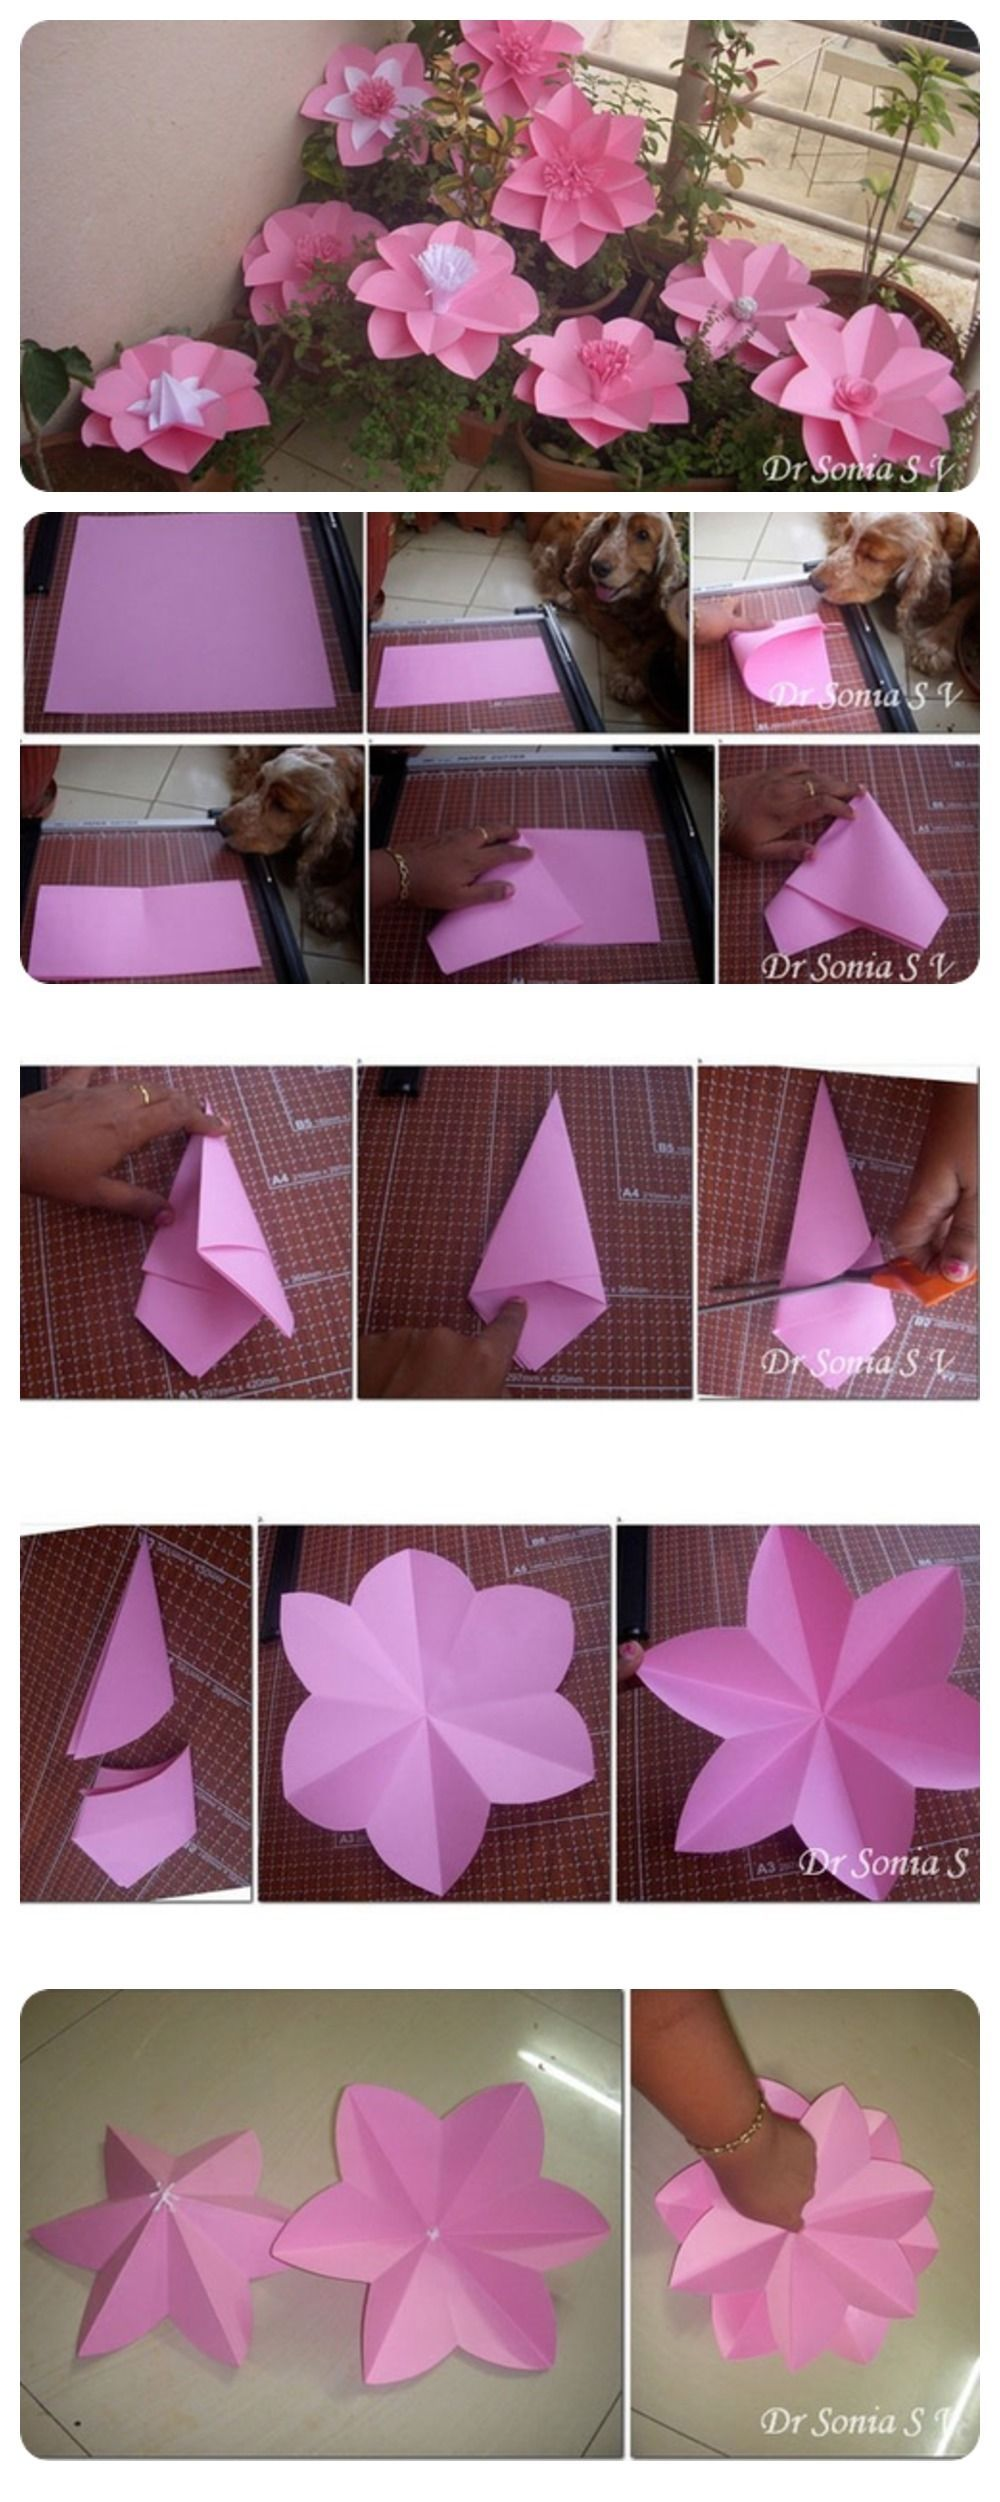 Paper flowers tutorial party tutorial party ideas party crafts paper paper flowers tutorial party tutorial party ideas party crafts paper flower party craft ideas mightylinksfo